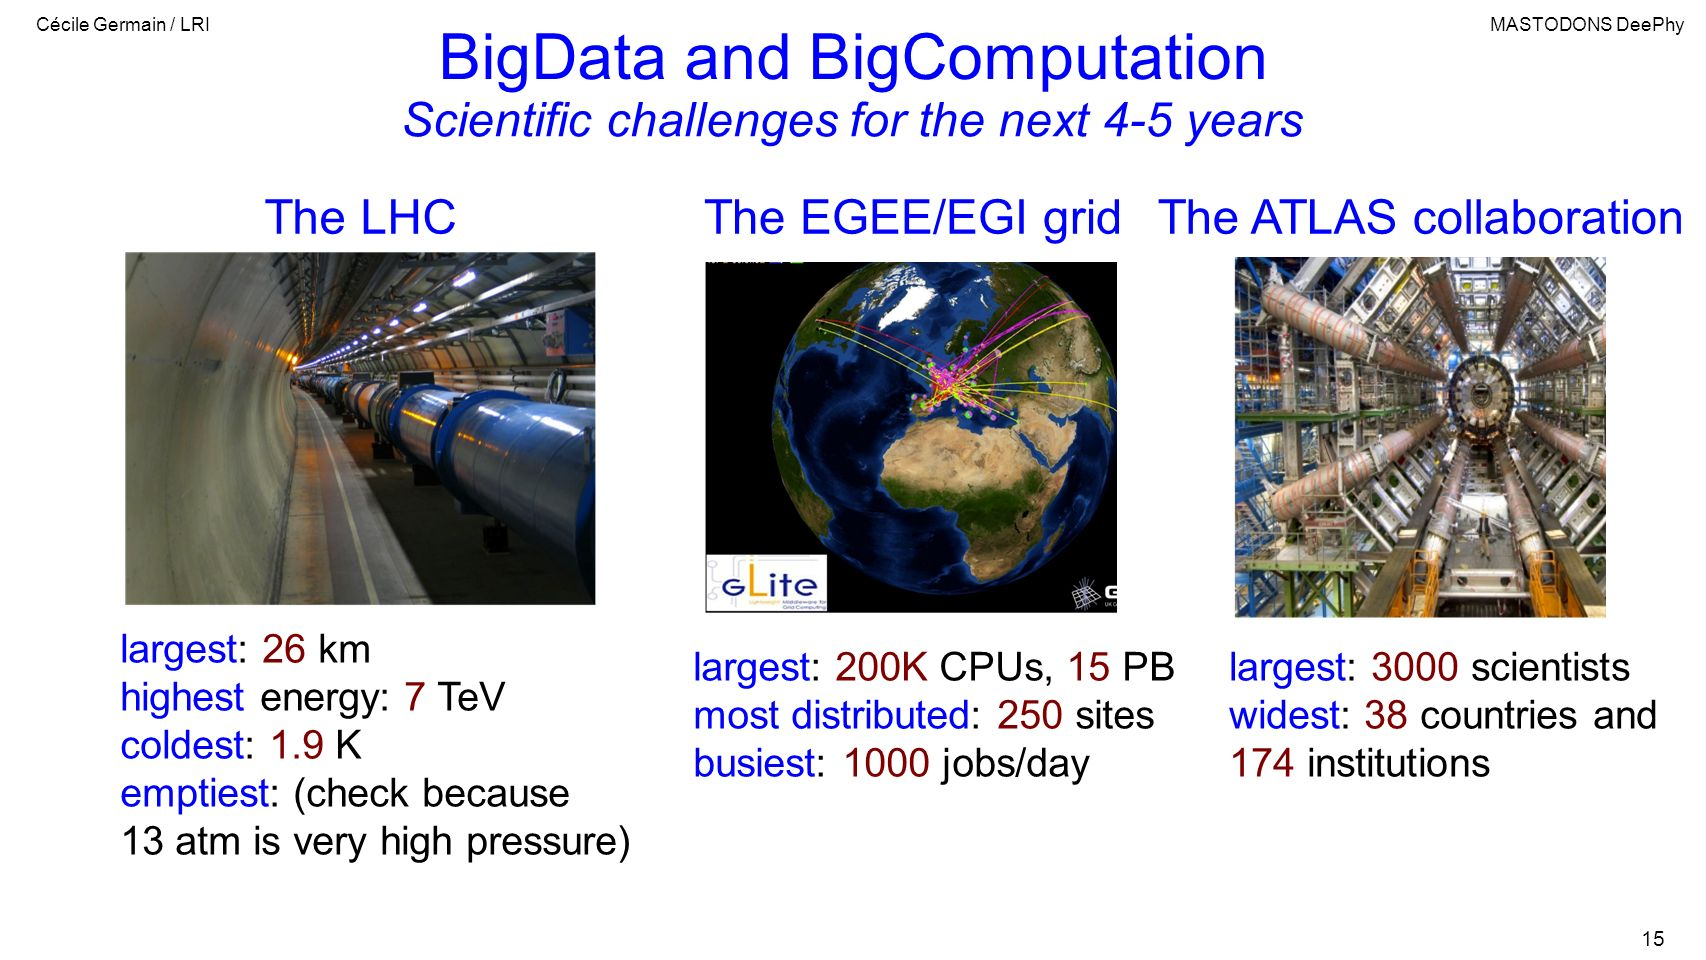 Cécile Germain / LRIMASTODONS DeePhy 15 BigData and BigComputation Scientific challenges for the next 4-5 years The LHCThe EGEE/EGI gridThe ATLAS coll